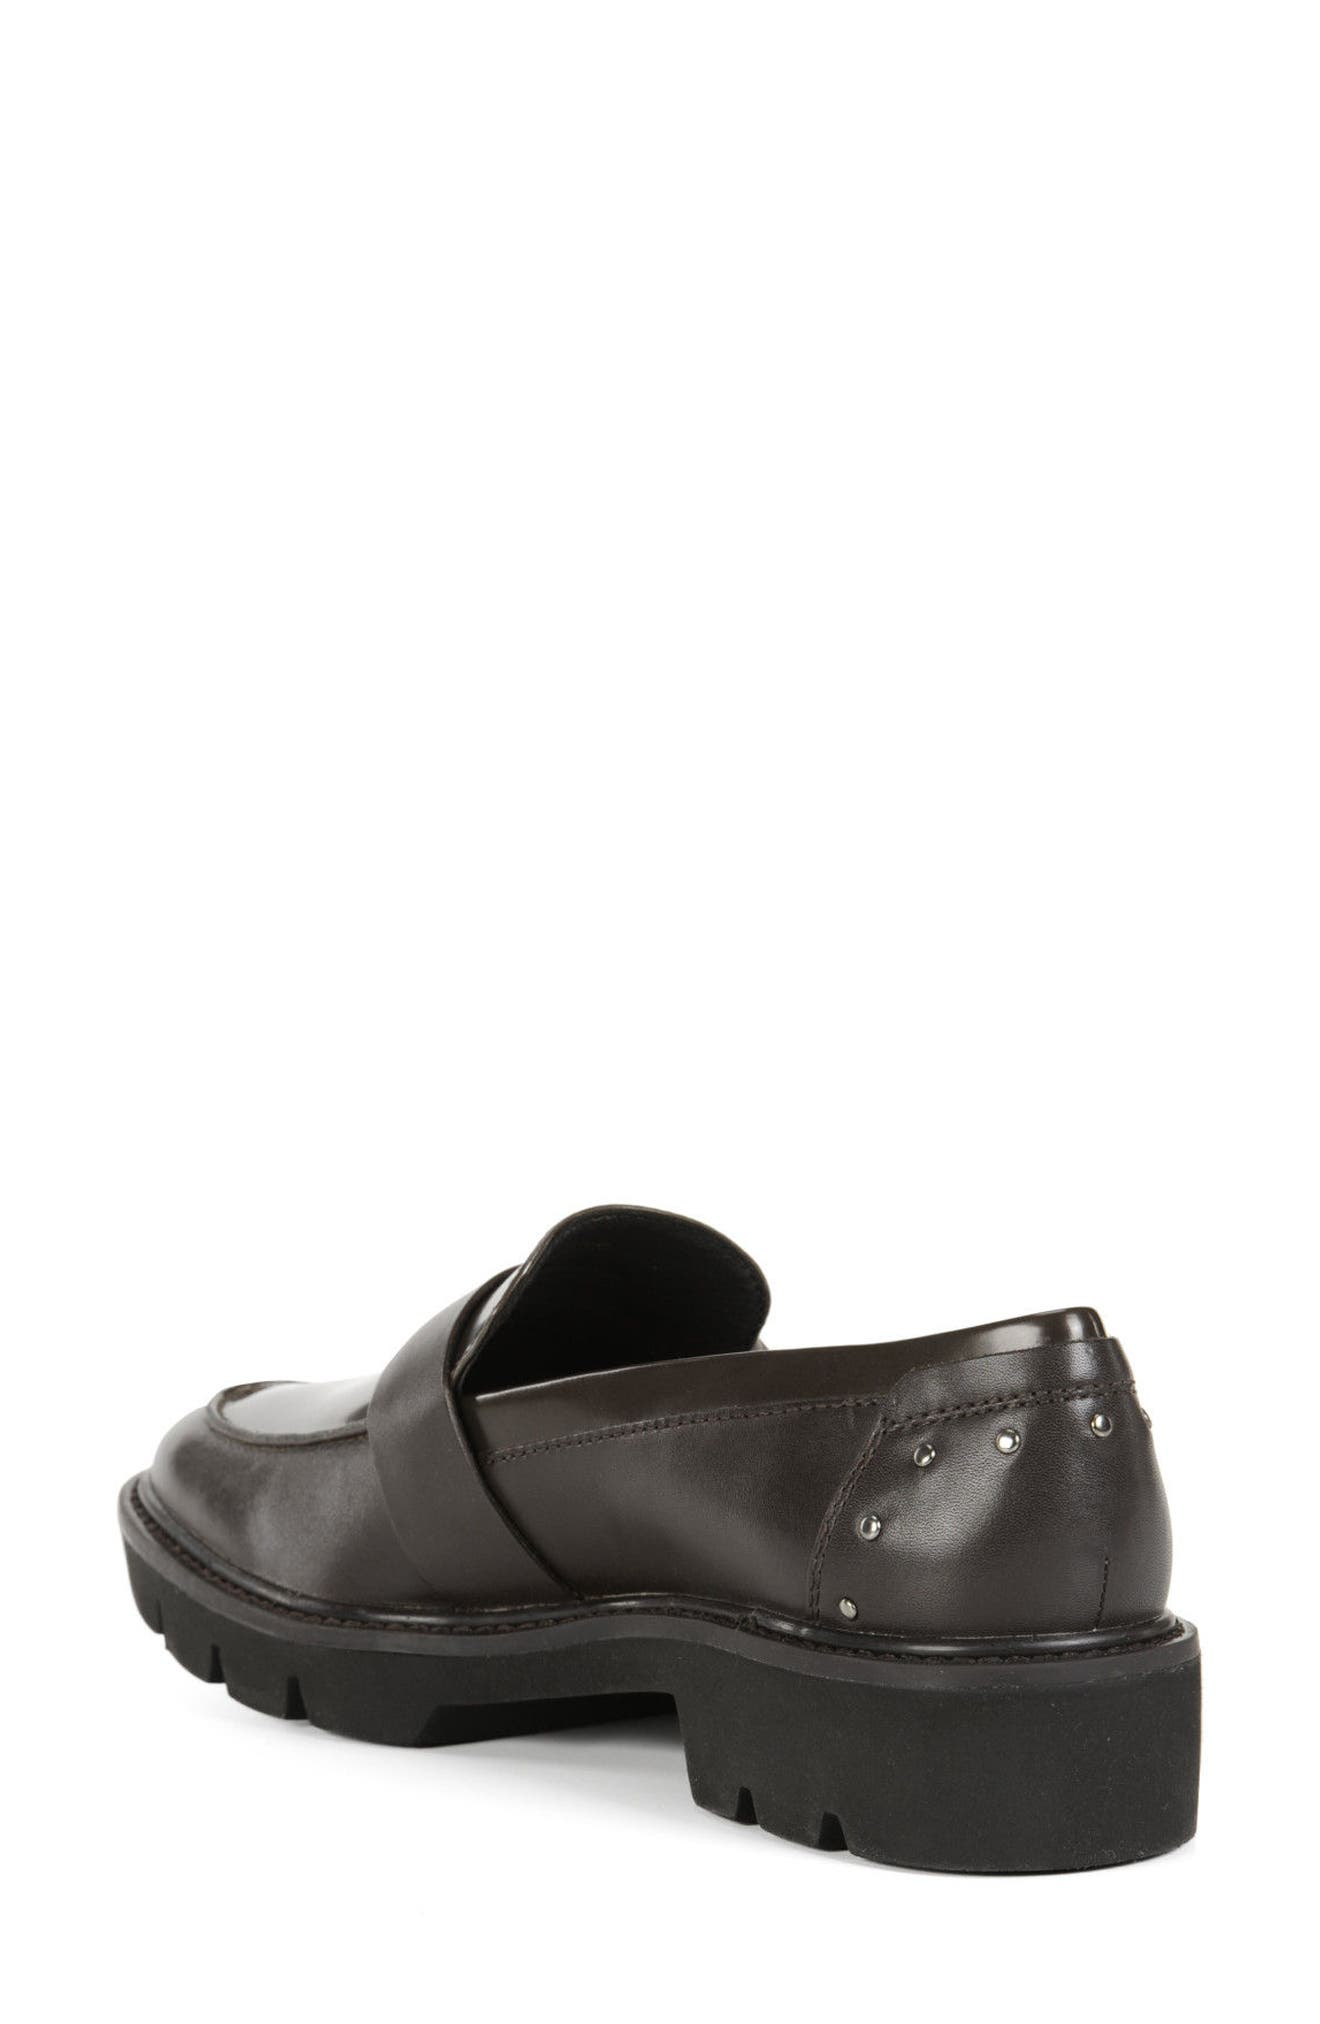 Quinlynn Loafer,                             Alternate thumbnail 2, color,                             Brown Leather